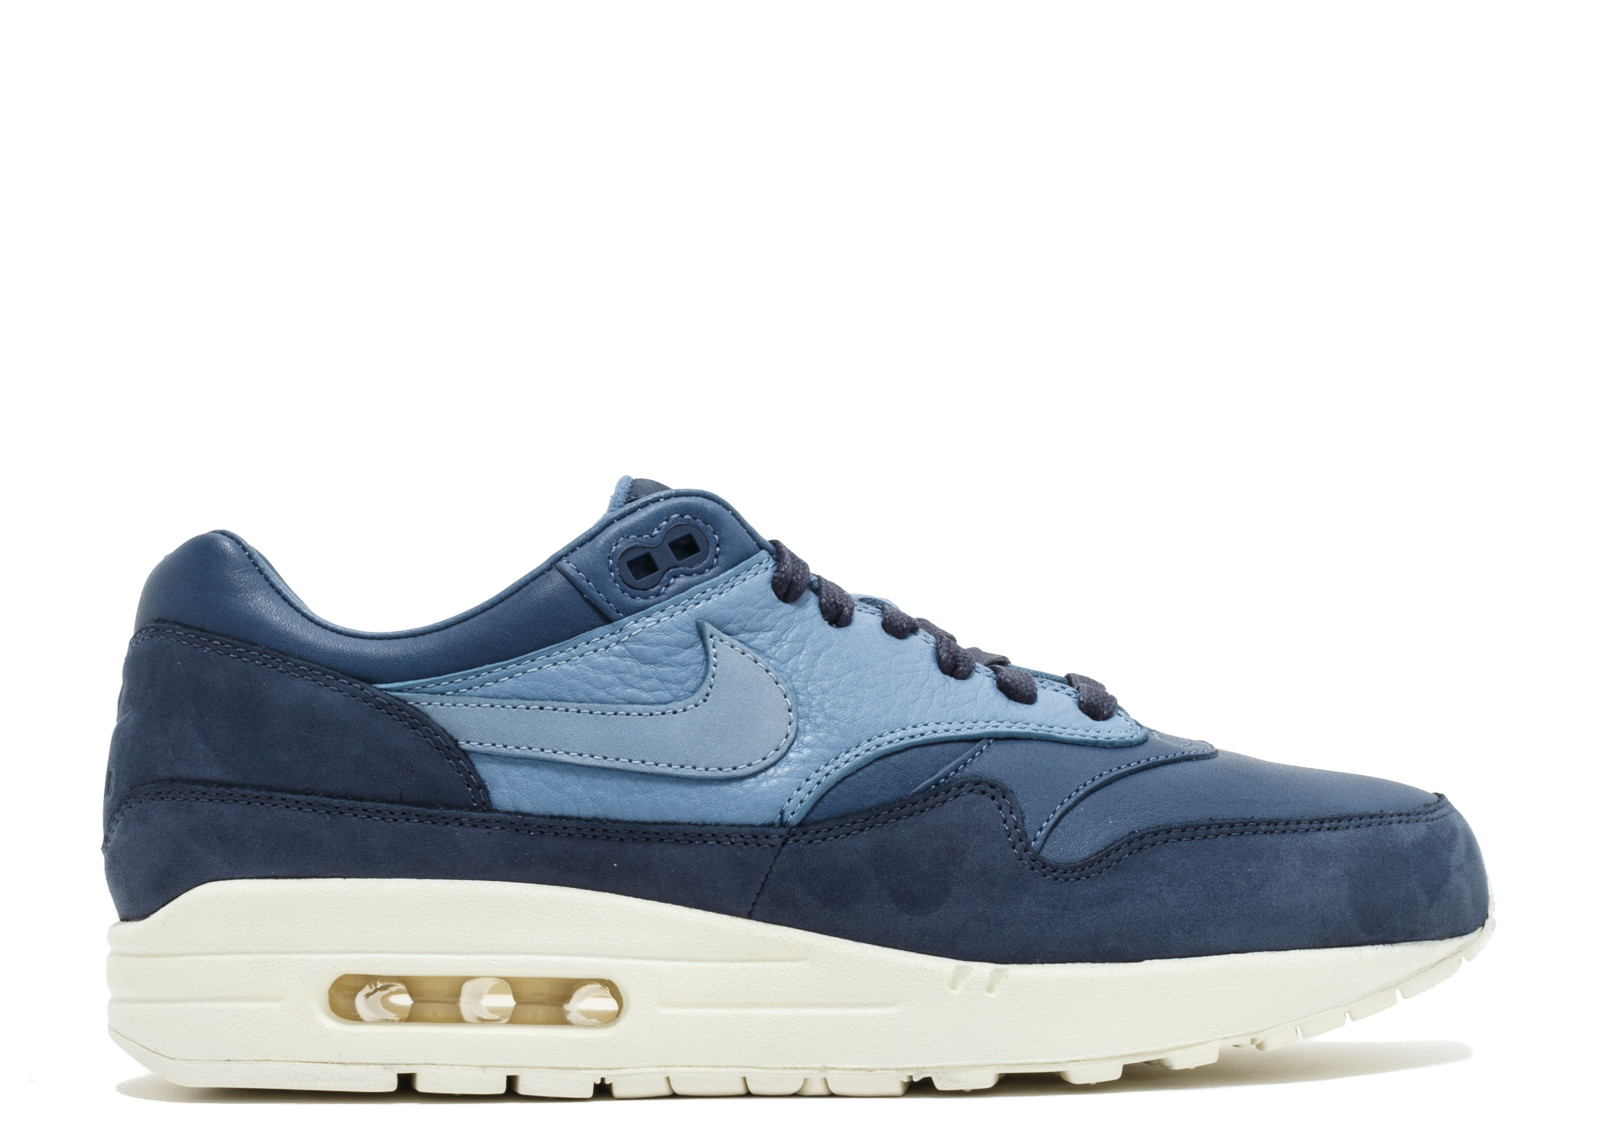 4e7c99fcb6 Nikelab Air Max 1 Pinnacle - 859554-400 - Size 10.5 888507018960 | eBay